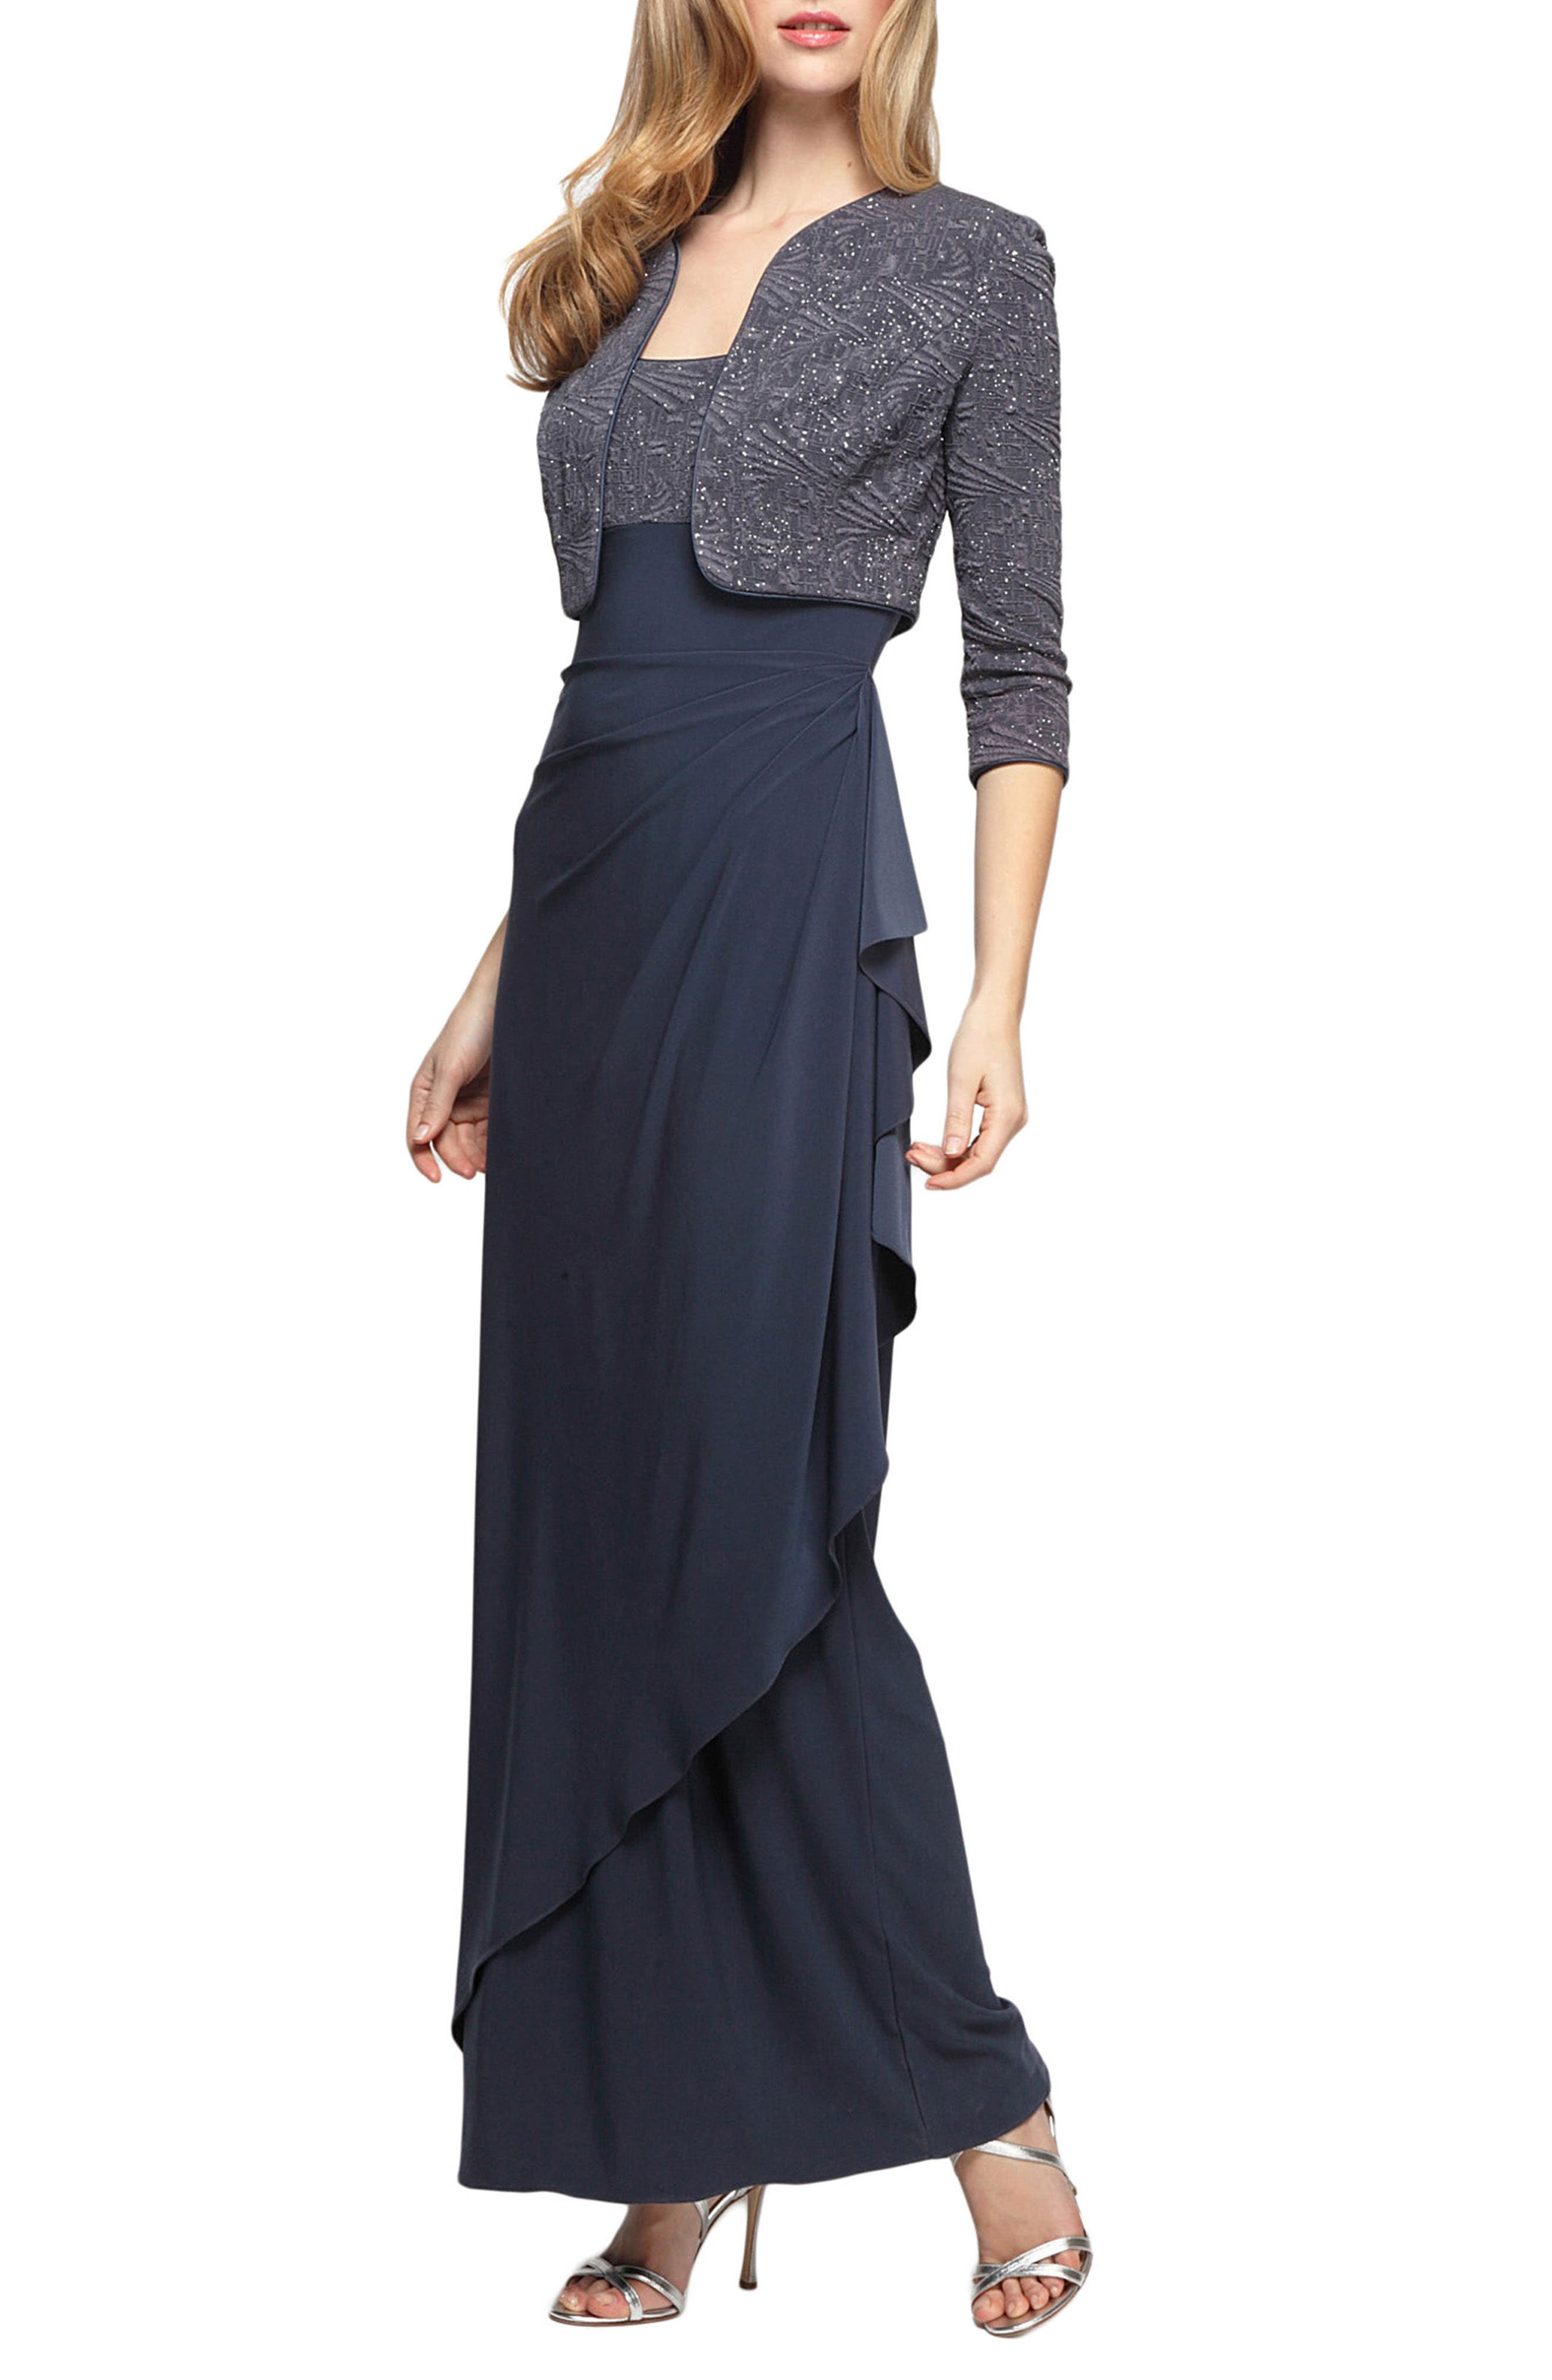 1930s Evening Dresses | Old Hollywood Dress Womens Alex Evenings Draped Gown With Bolero $179.00 AT vintagedancer.com